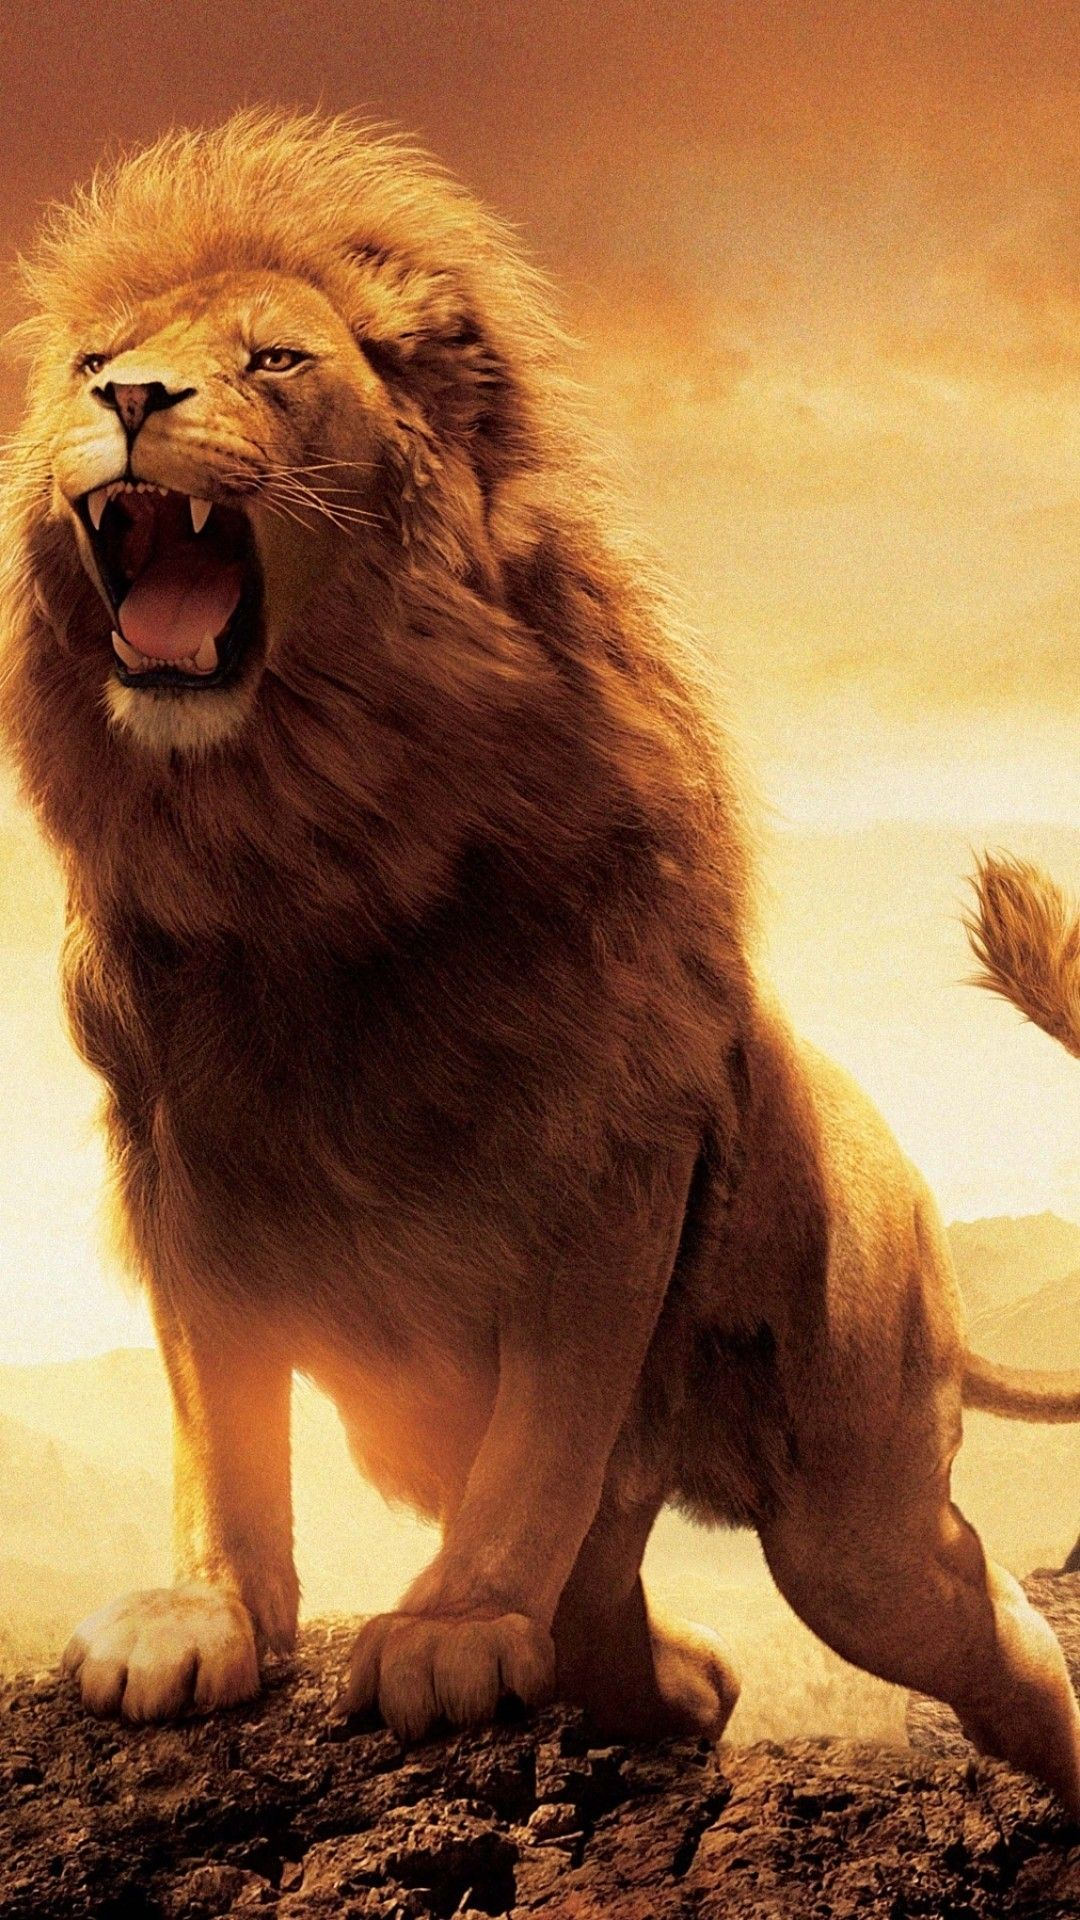 Res 1080x1920 Animal Wallpapers Download The Following Roaring Lion Lion Live Wallpaper Lion Images Lion Pictures